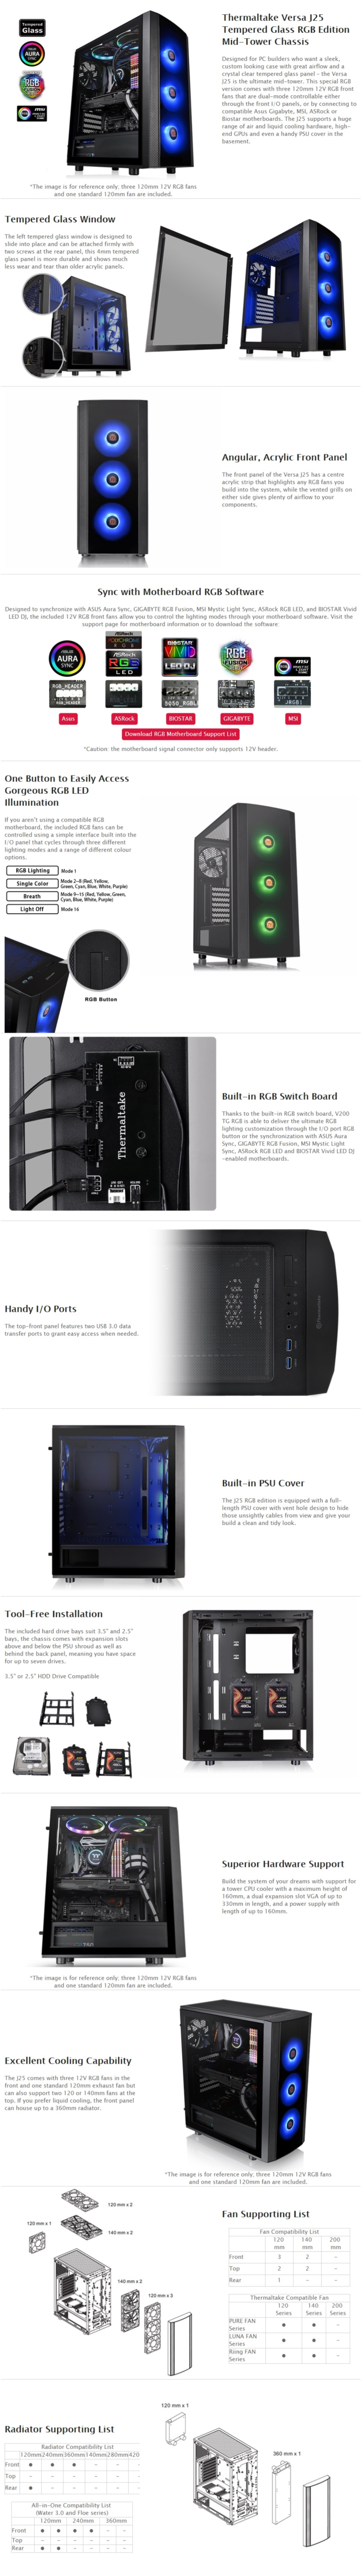 A large marketing image providing additional information about the product Thermaltake Versa J25 Tempered Glass RGB Mid Tower - Additional alt info not provided